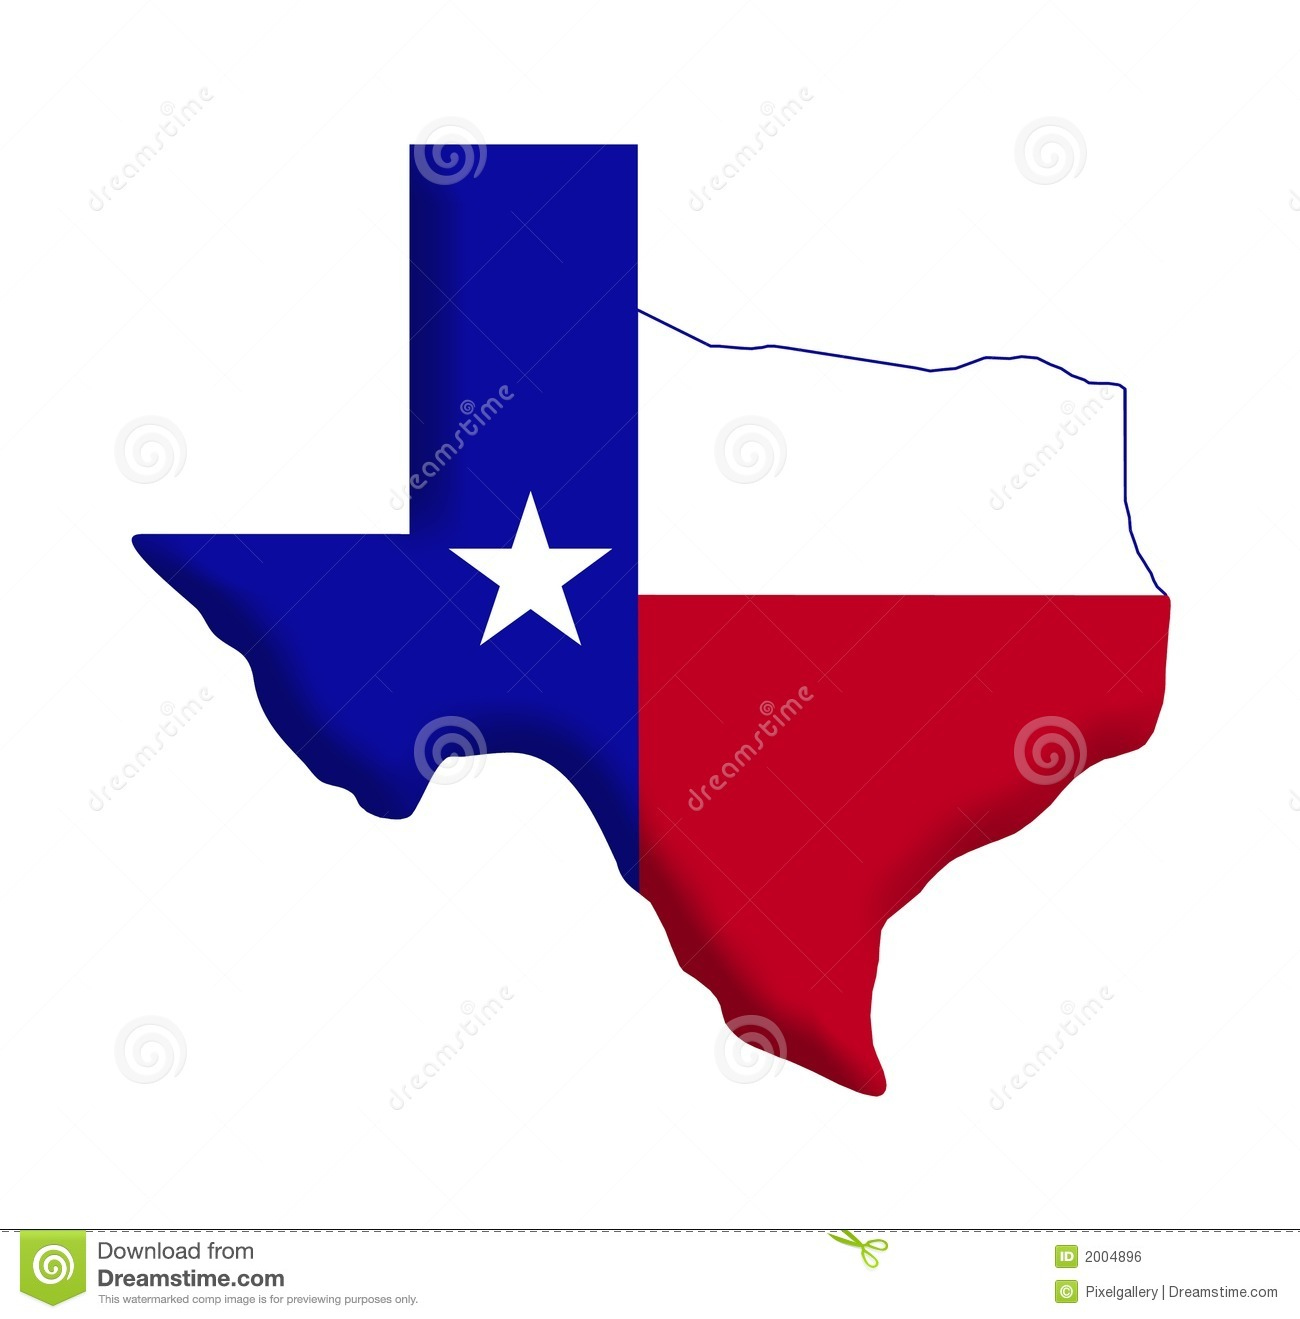 Texas clipart #10, Download drawings